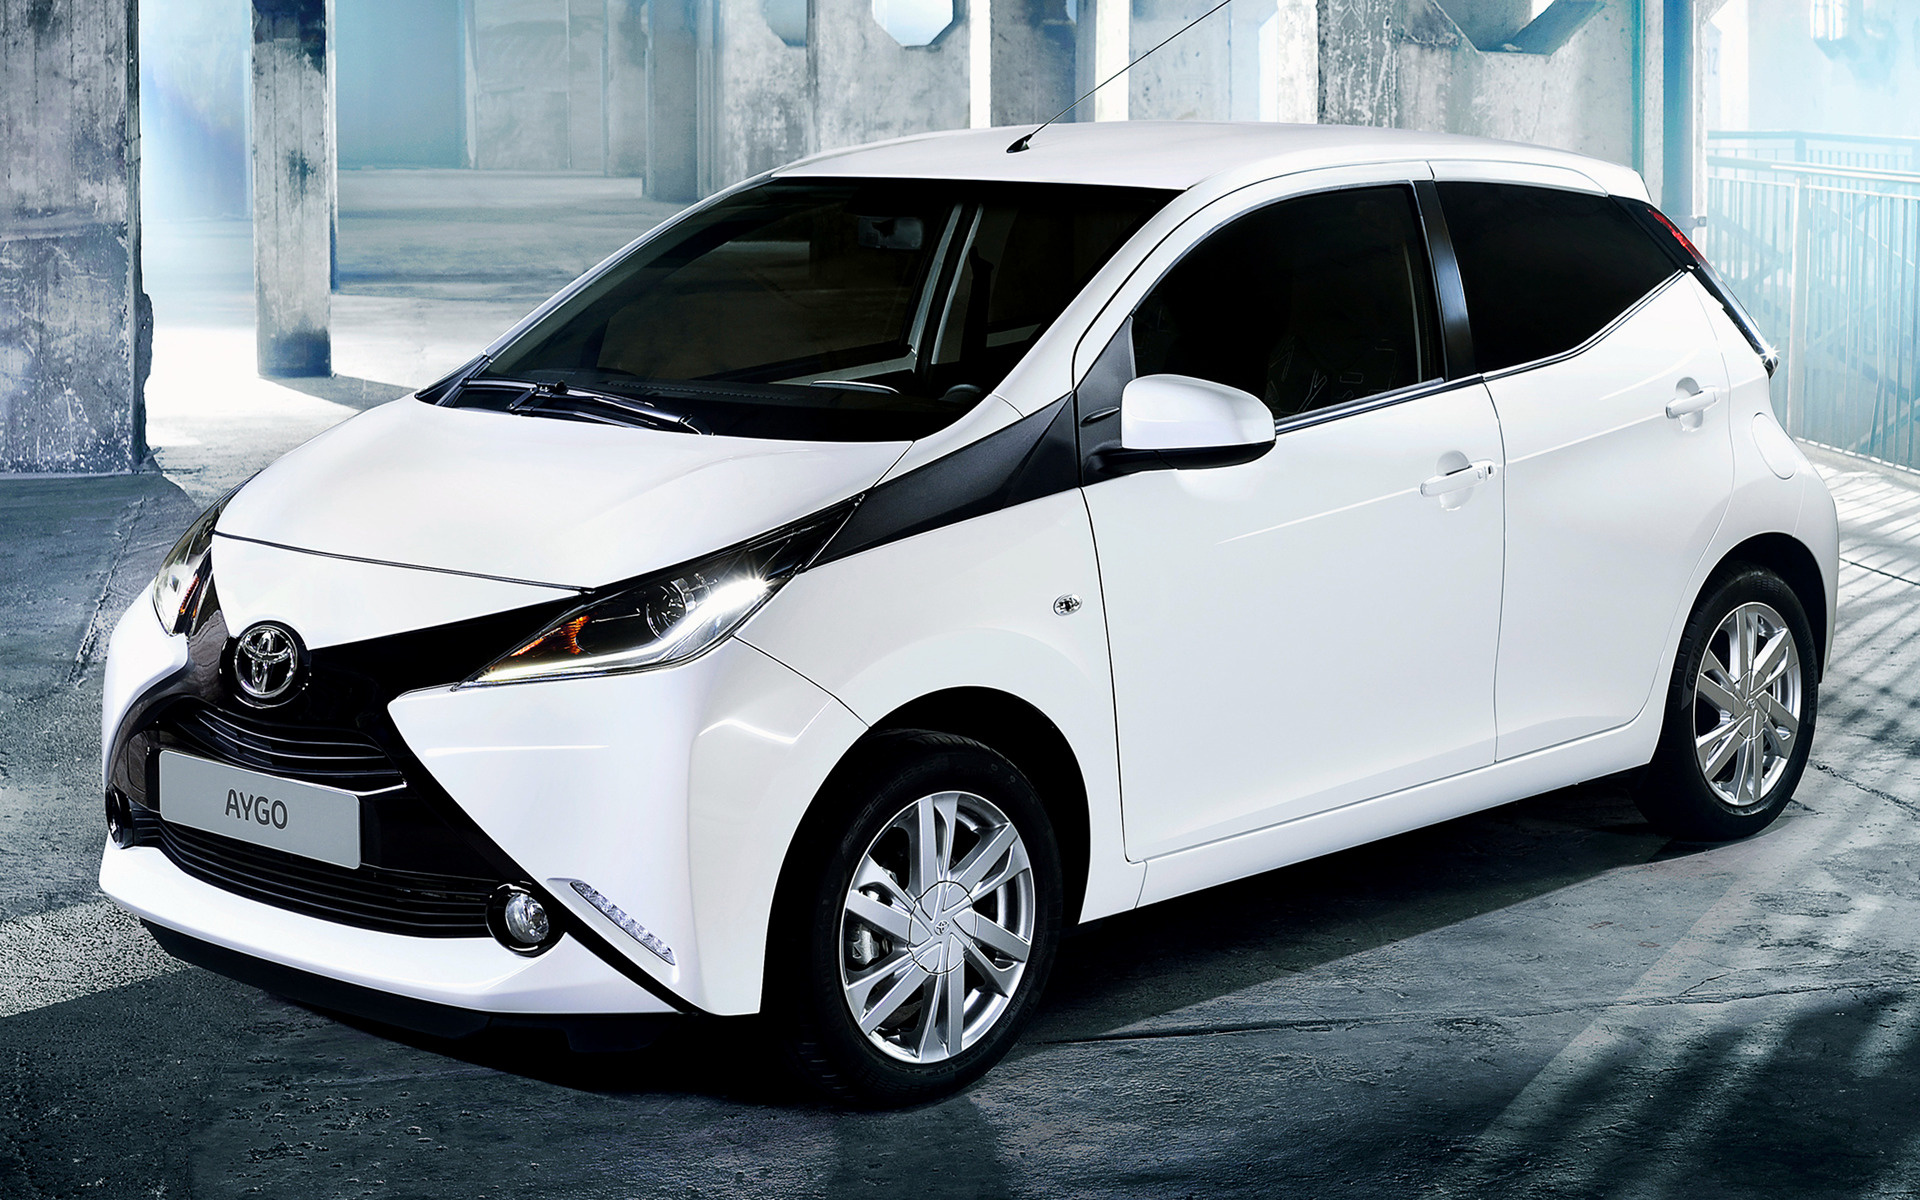 2014 Toyota Aygo x play 5 door   Wallpapers and HD Images Car Pixel 1920x1200